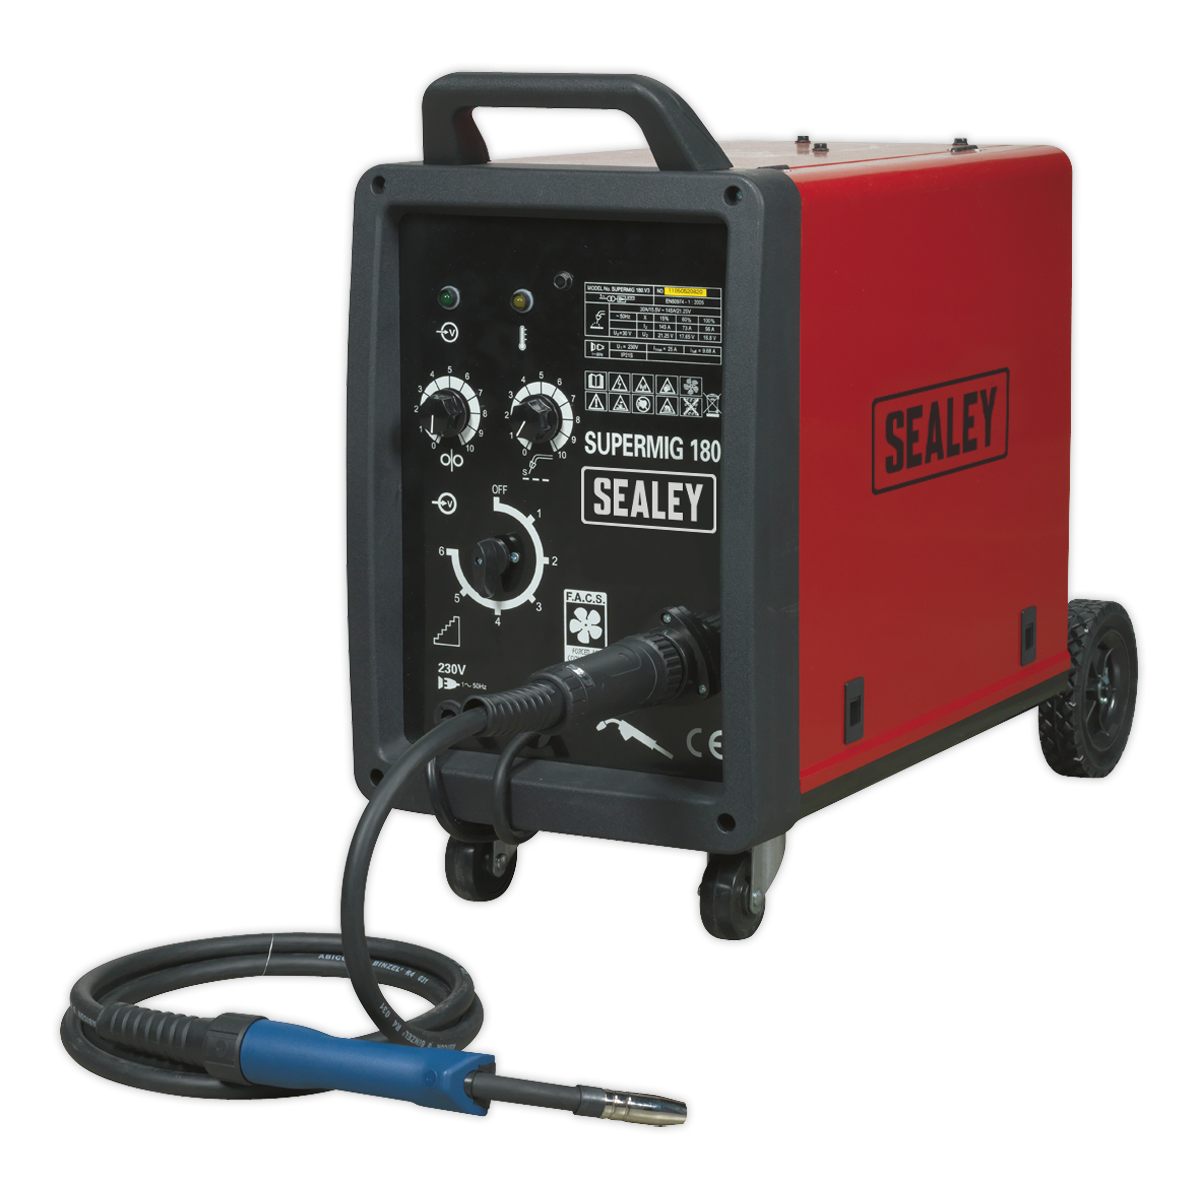 Sealey SUPERMIG180 Professional MIG Welder 180Amp 230V with Binzel Euro Torch